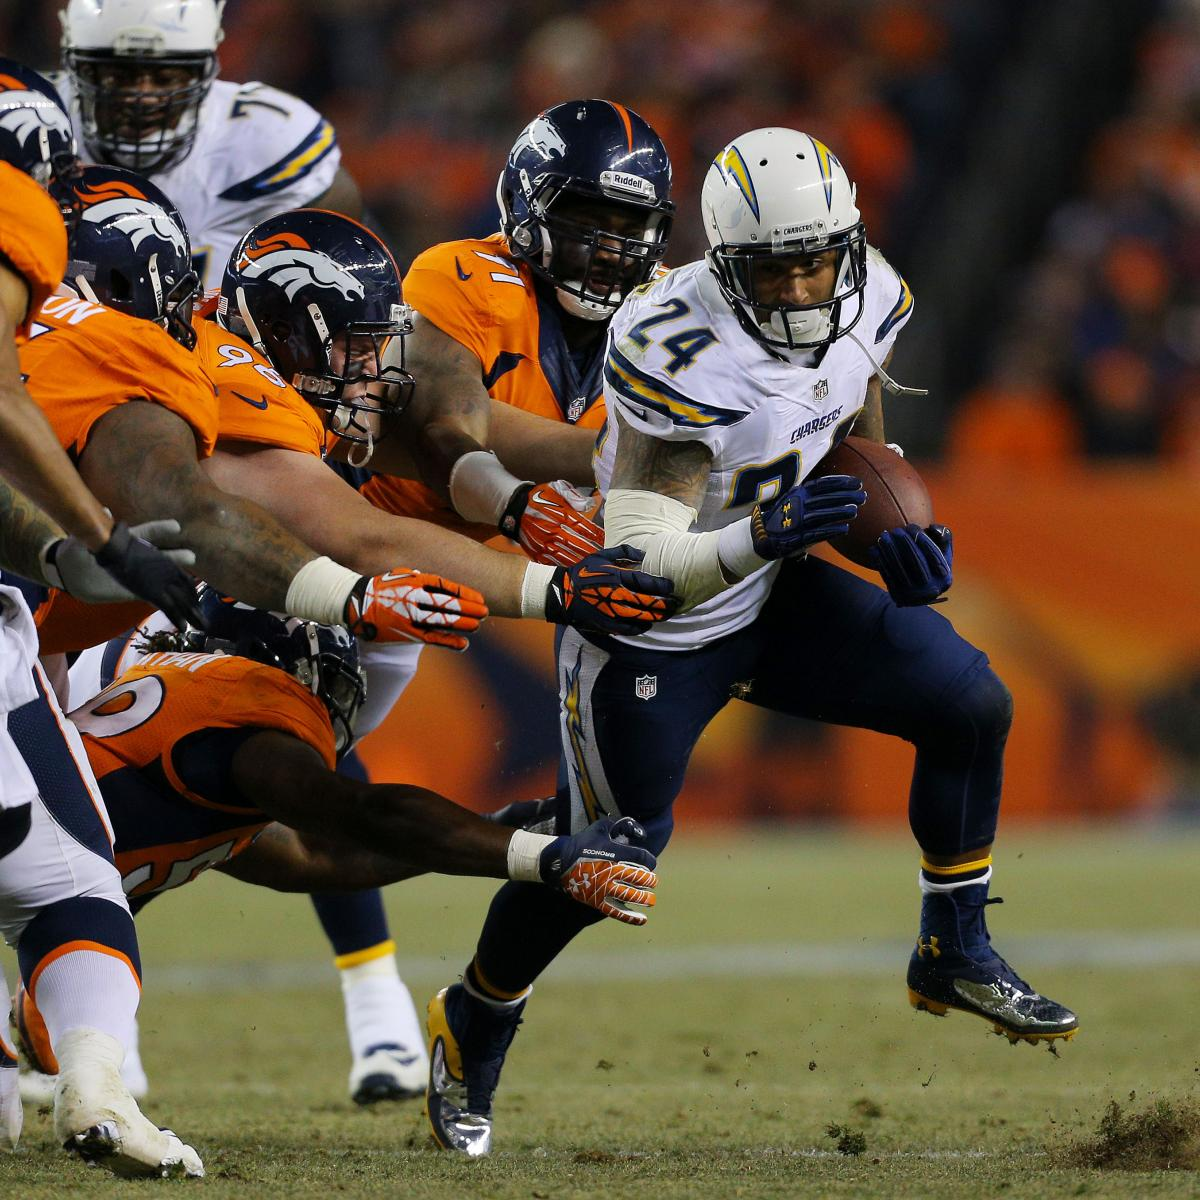 San Diego Chargers Home Schedule 2014: San Diego Chargers Vs. Denver Broncos: Spread Analysis And